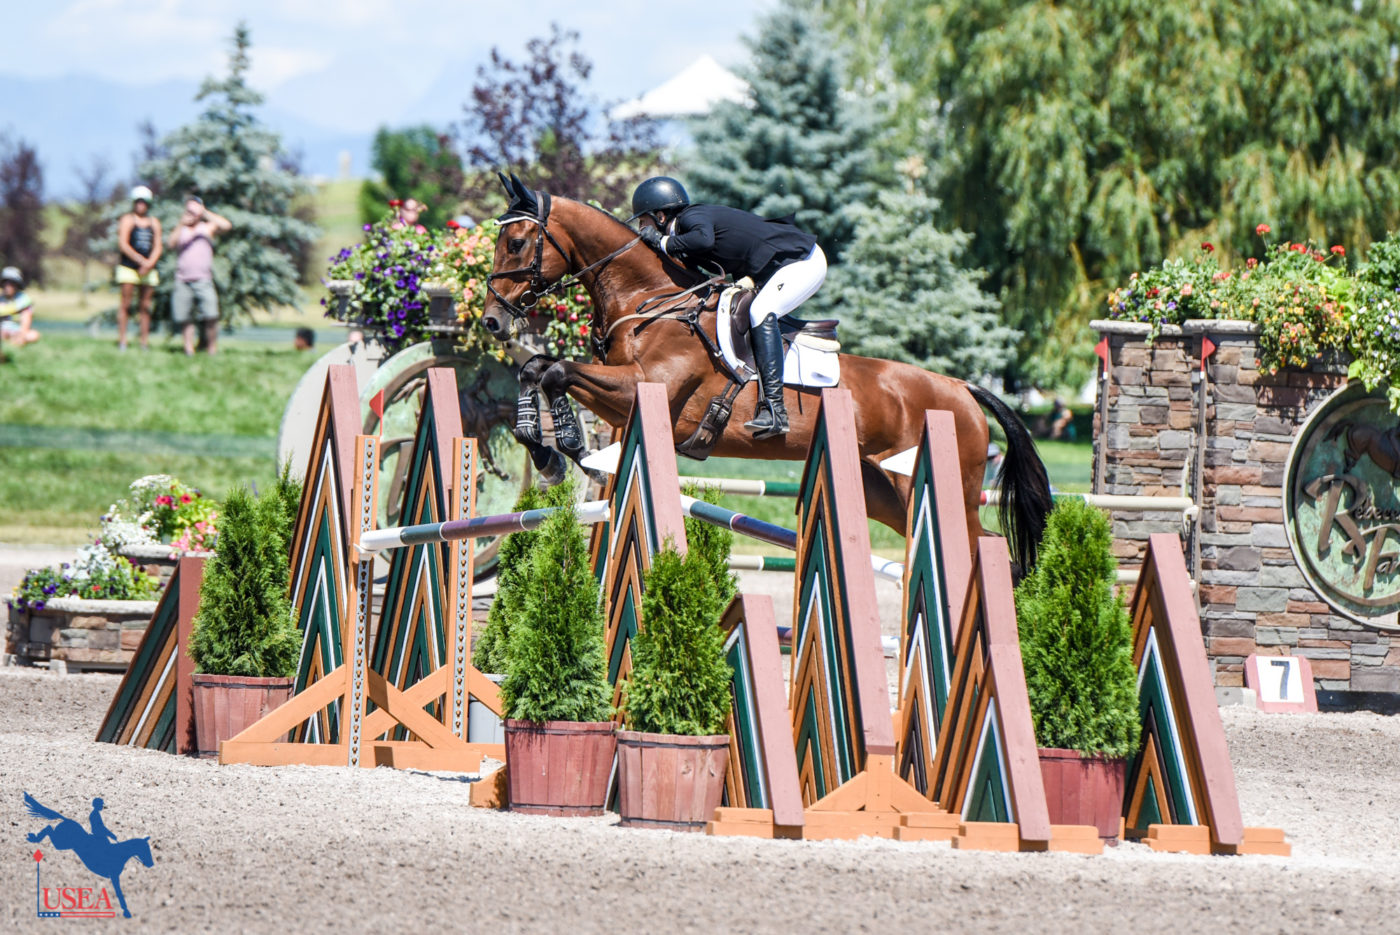 CIC3* - 8th - Forrest el-Effendi and Winter Colony